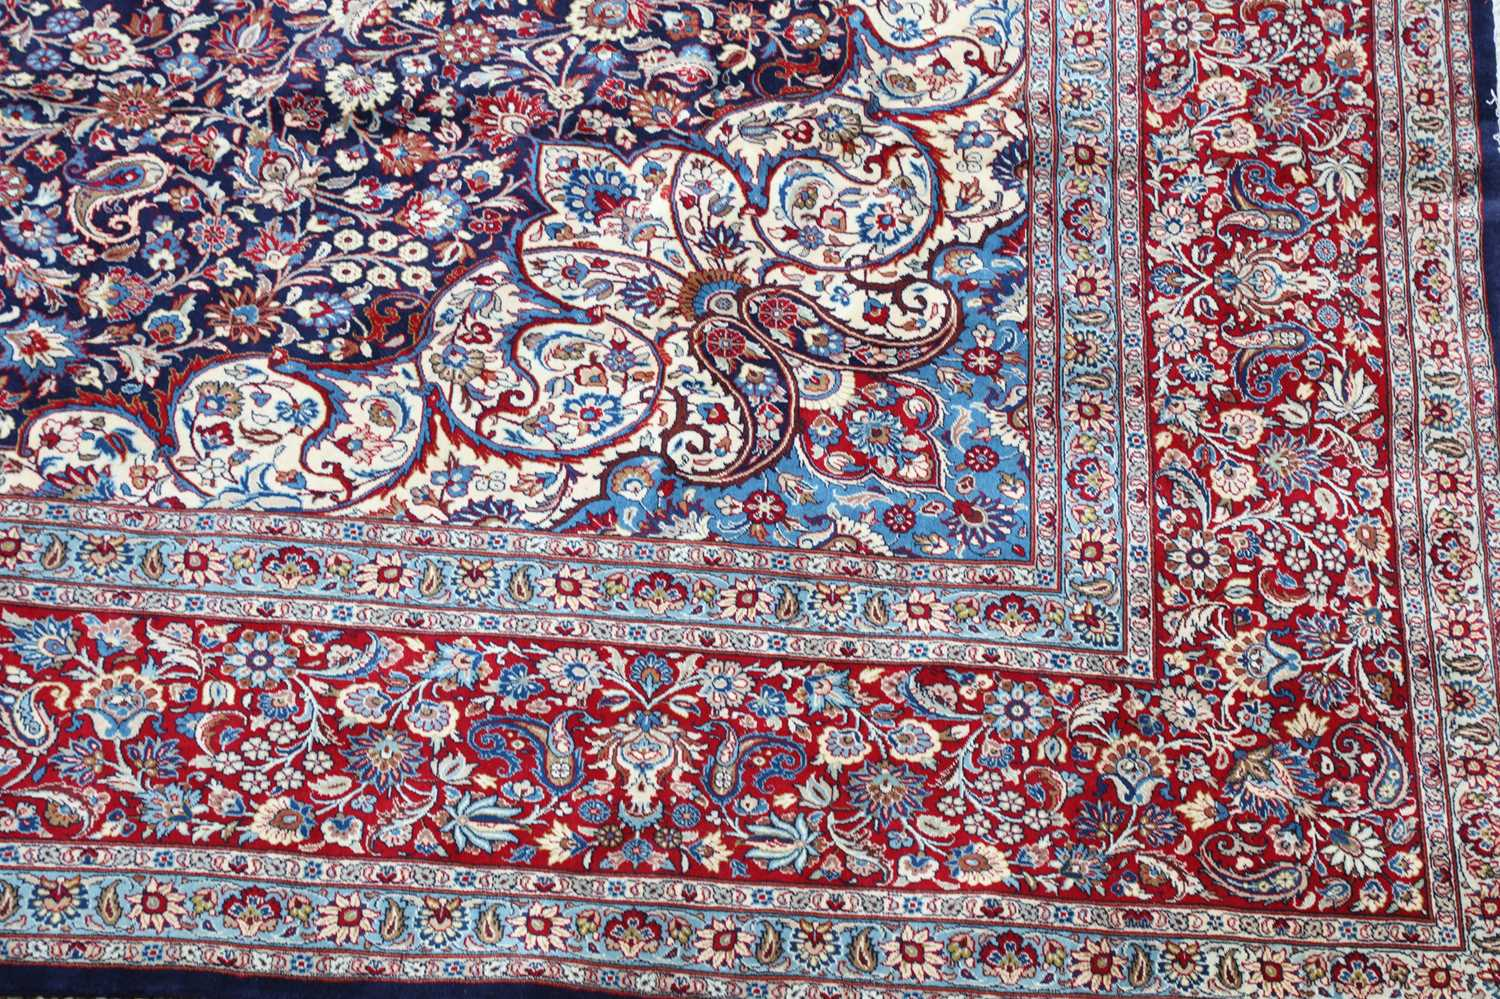 A large Persian Khorassan carpet, - Image 3 of 17